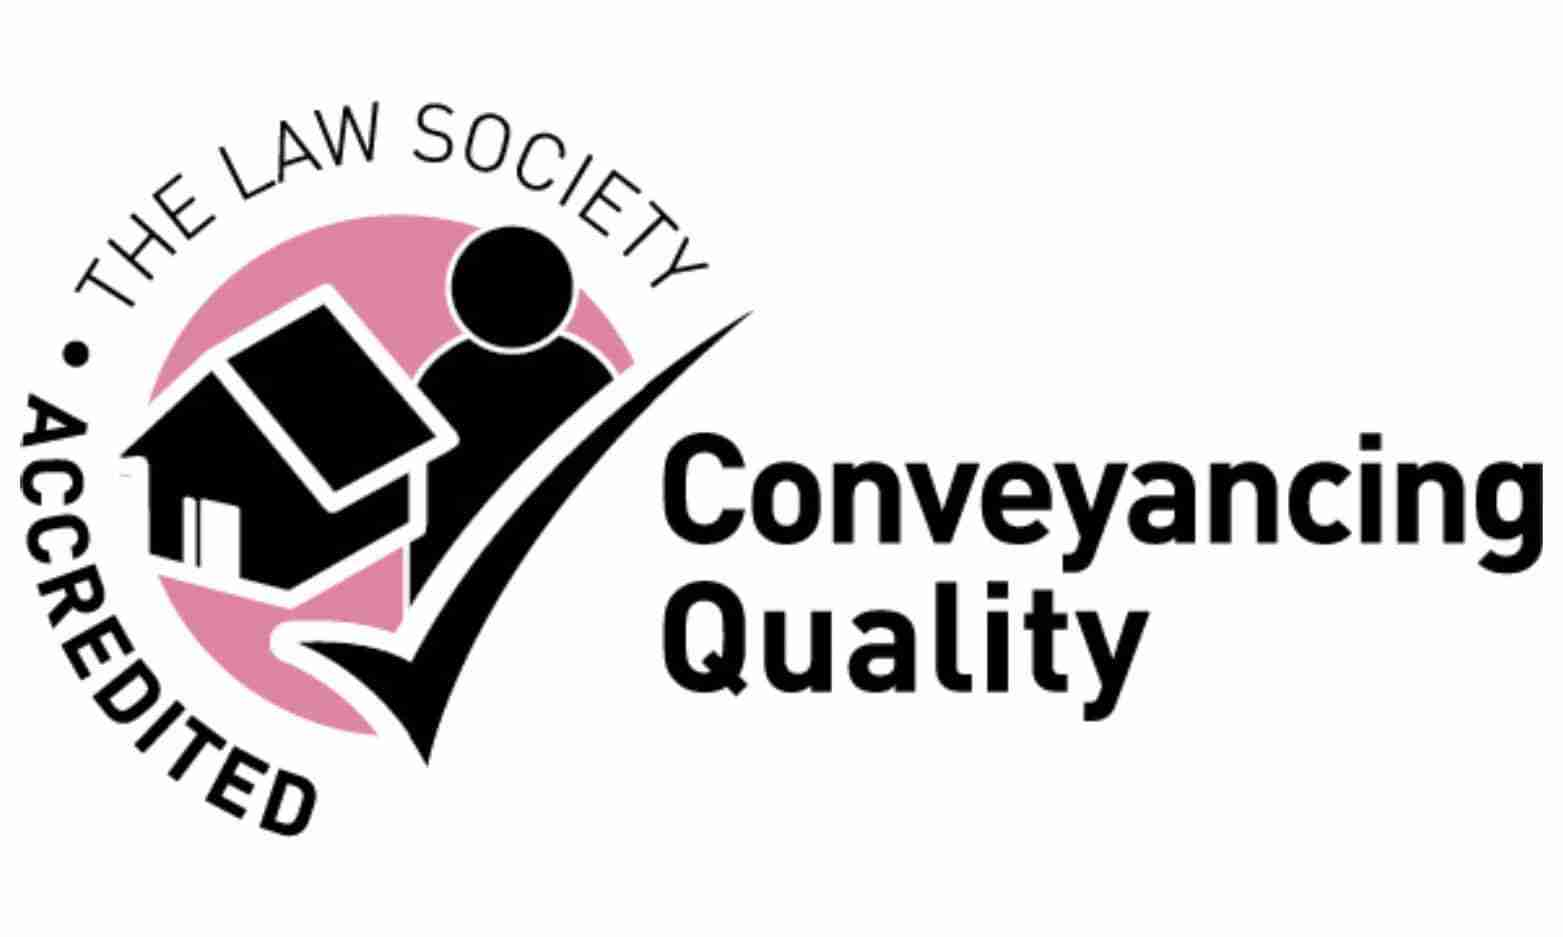 The Law Society Conveyancing Quality